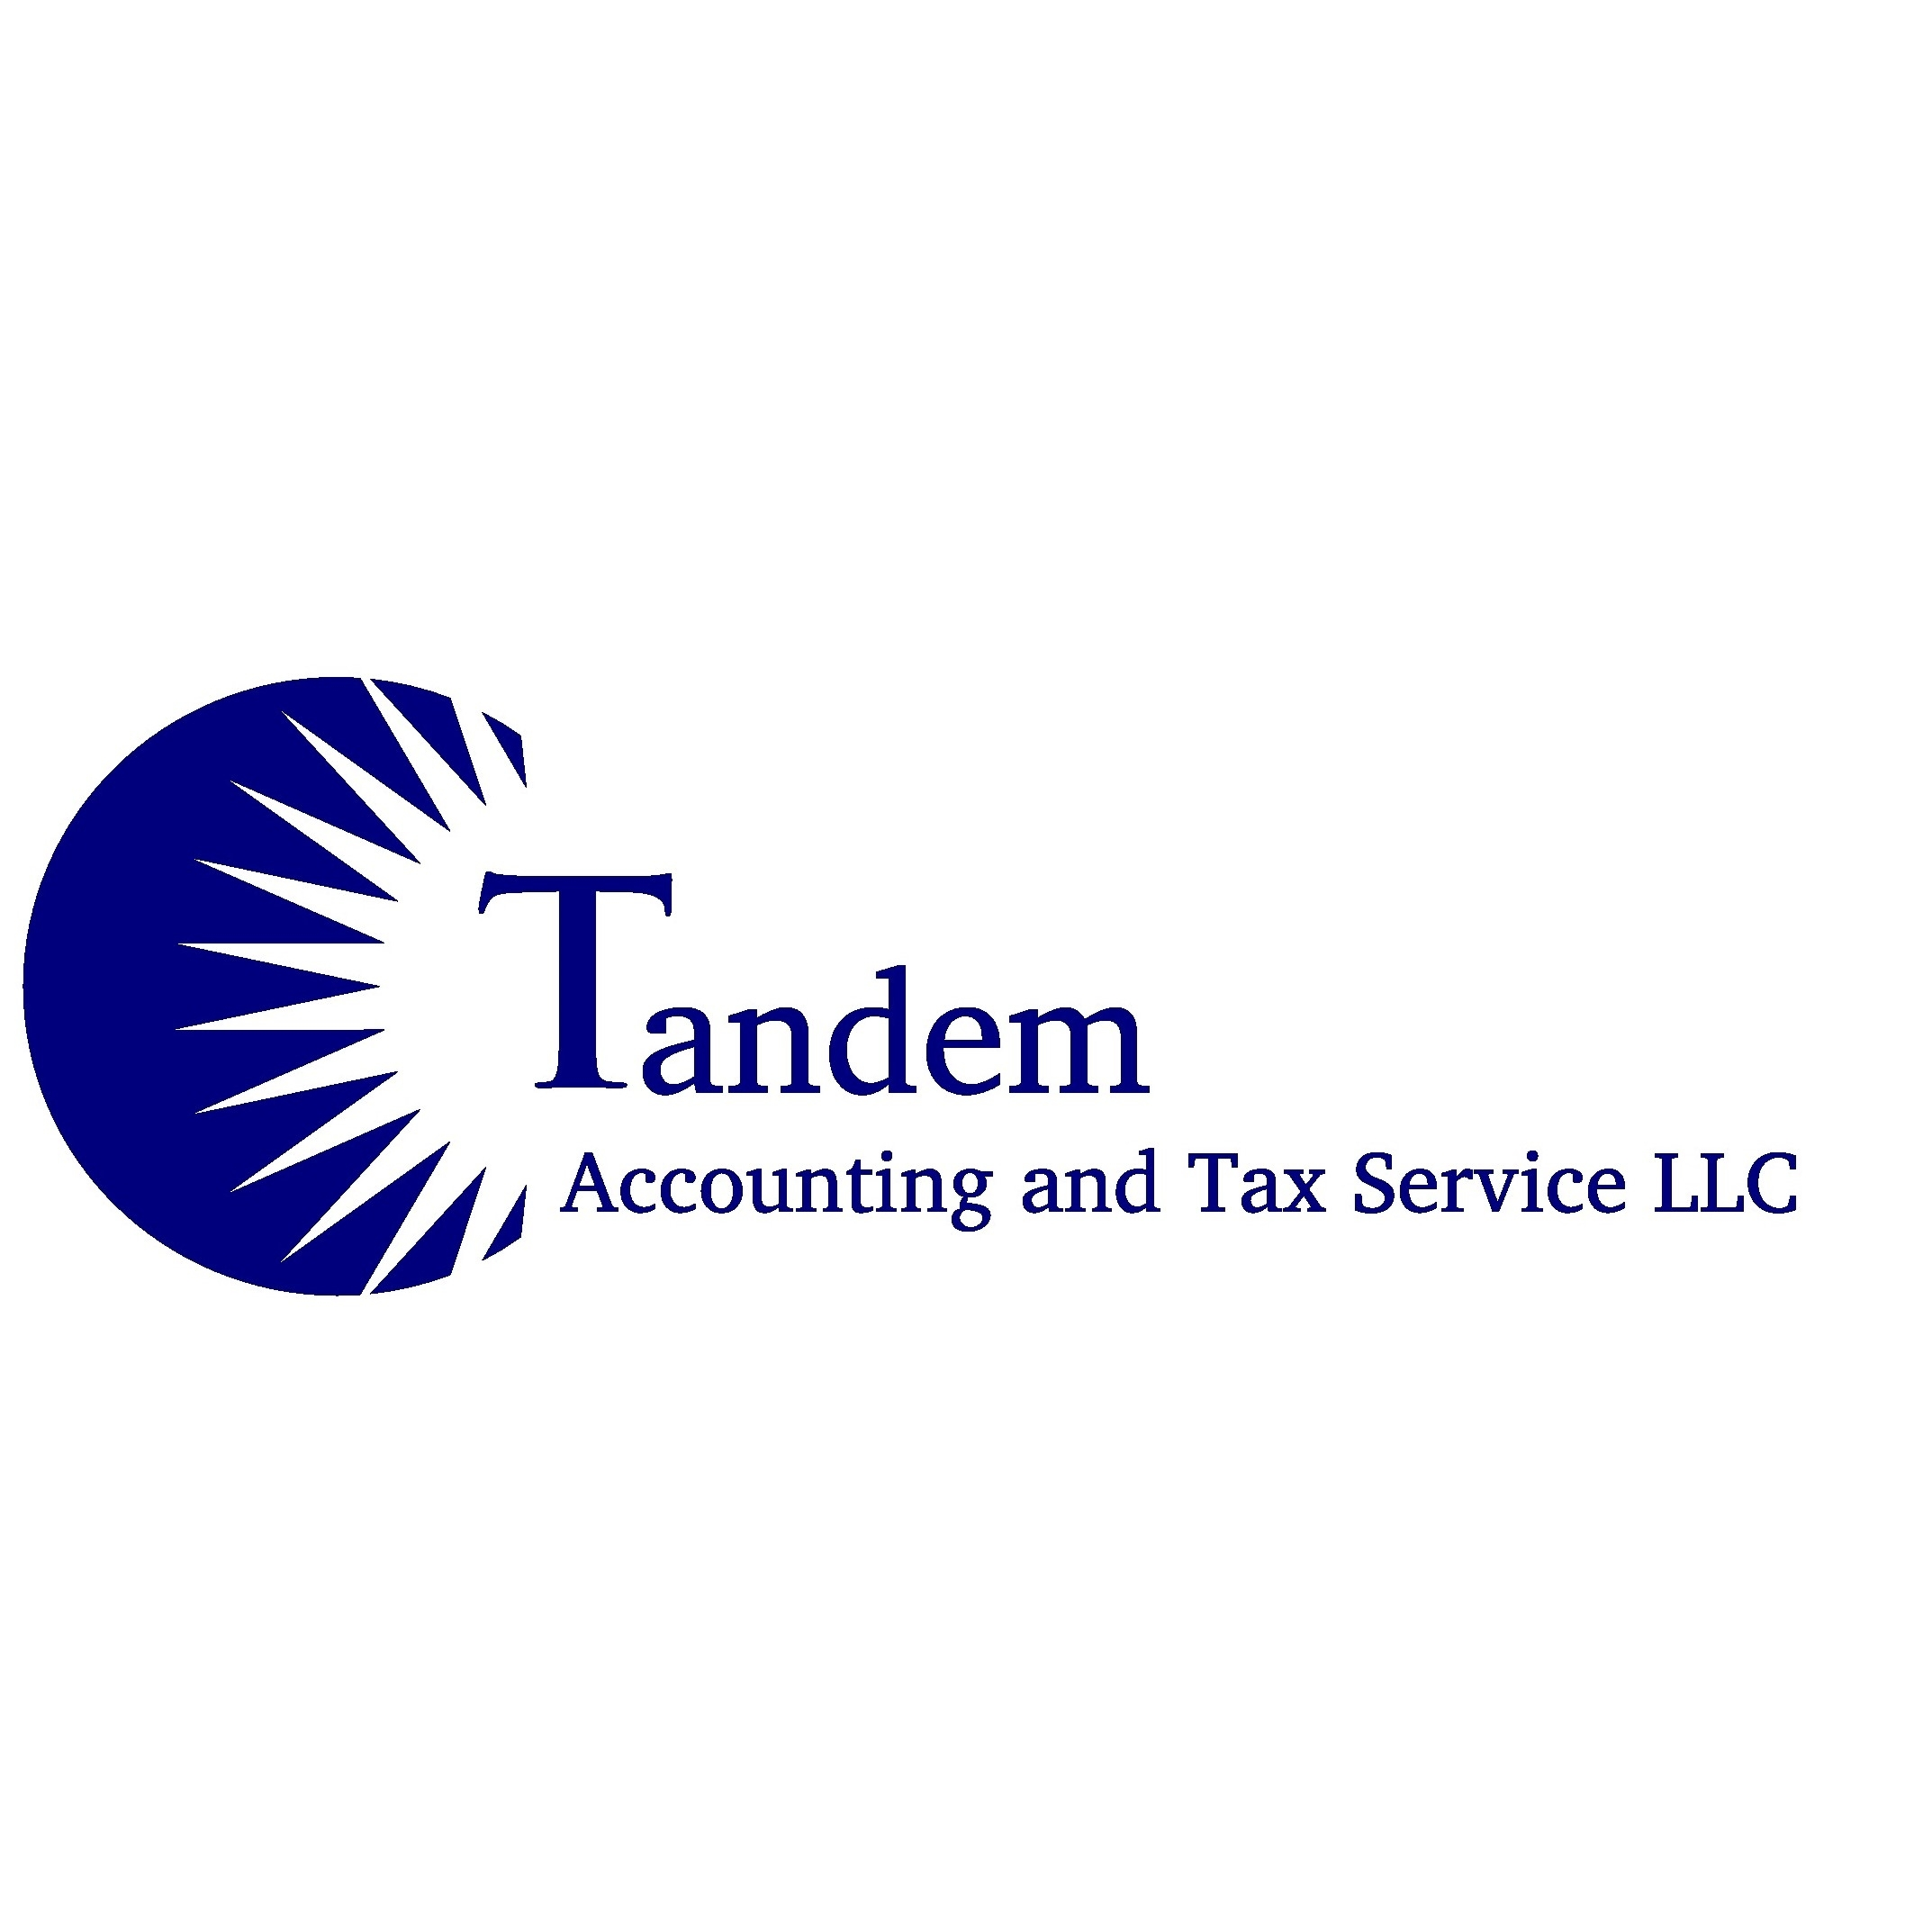 Tandem Accounting and Tax Service LLC Pictures and Photos ...